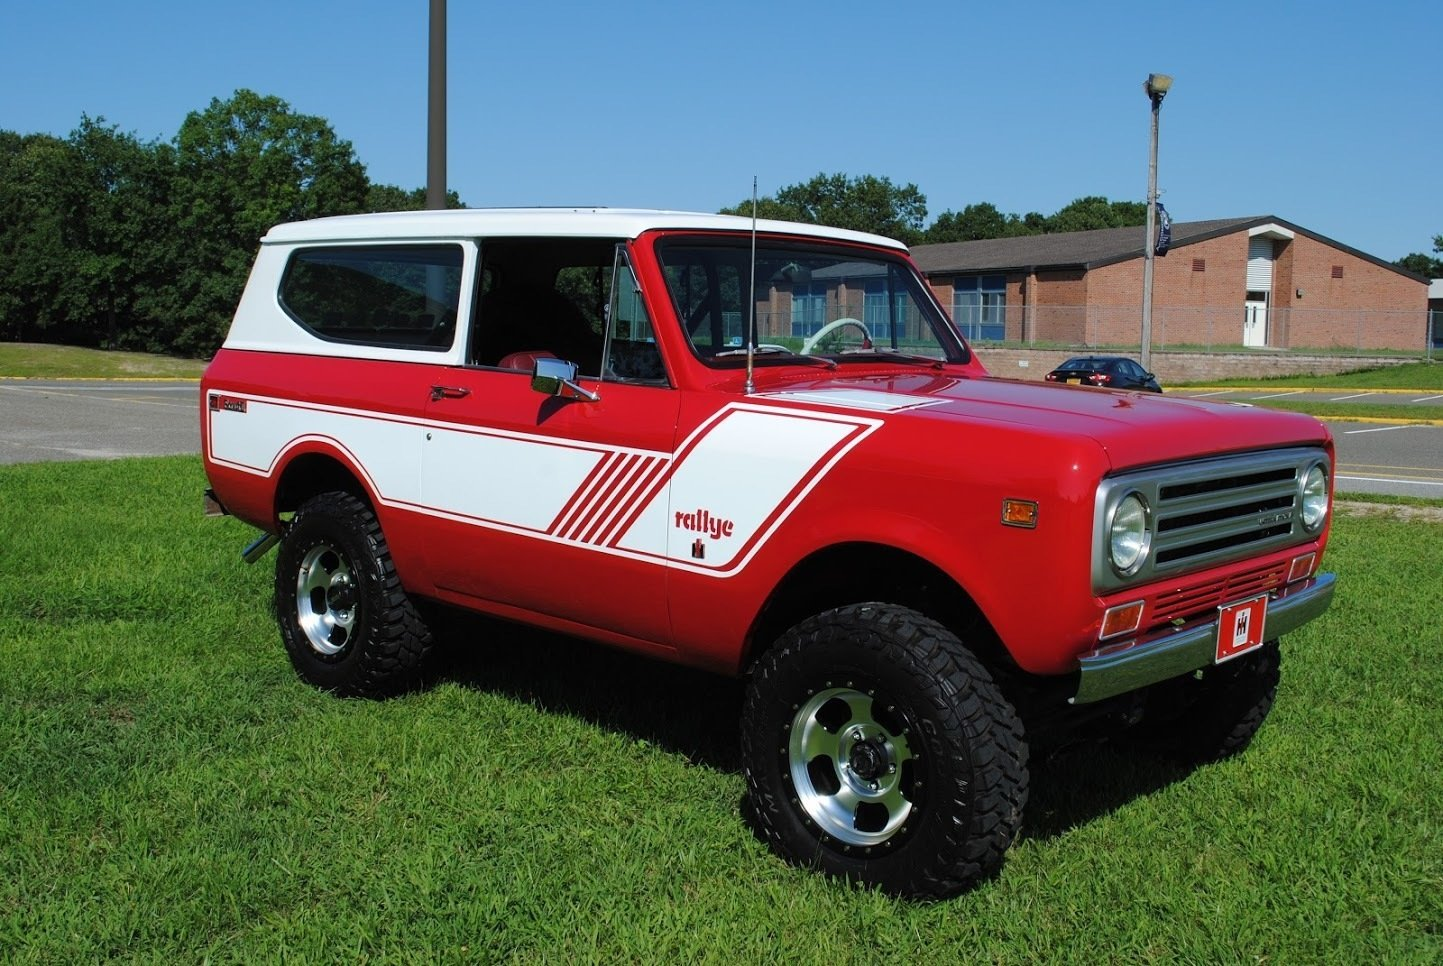 1972 international harvester scout ii 4x4 for sale #100775 | mcg on scout  ii air